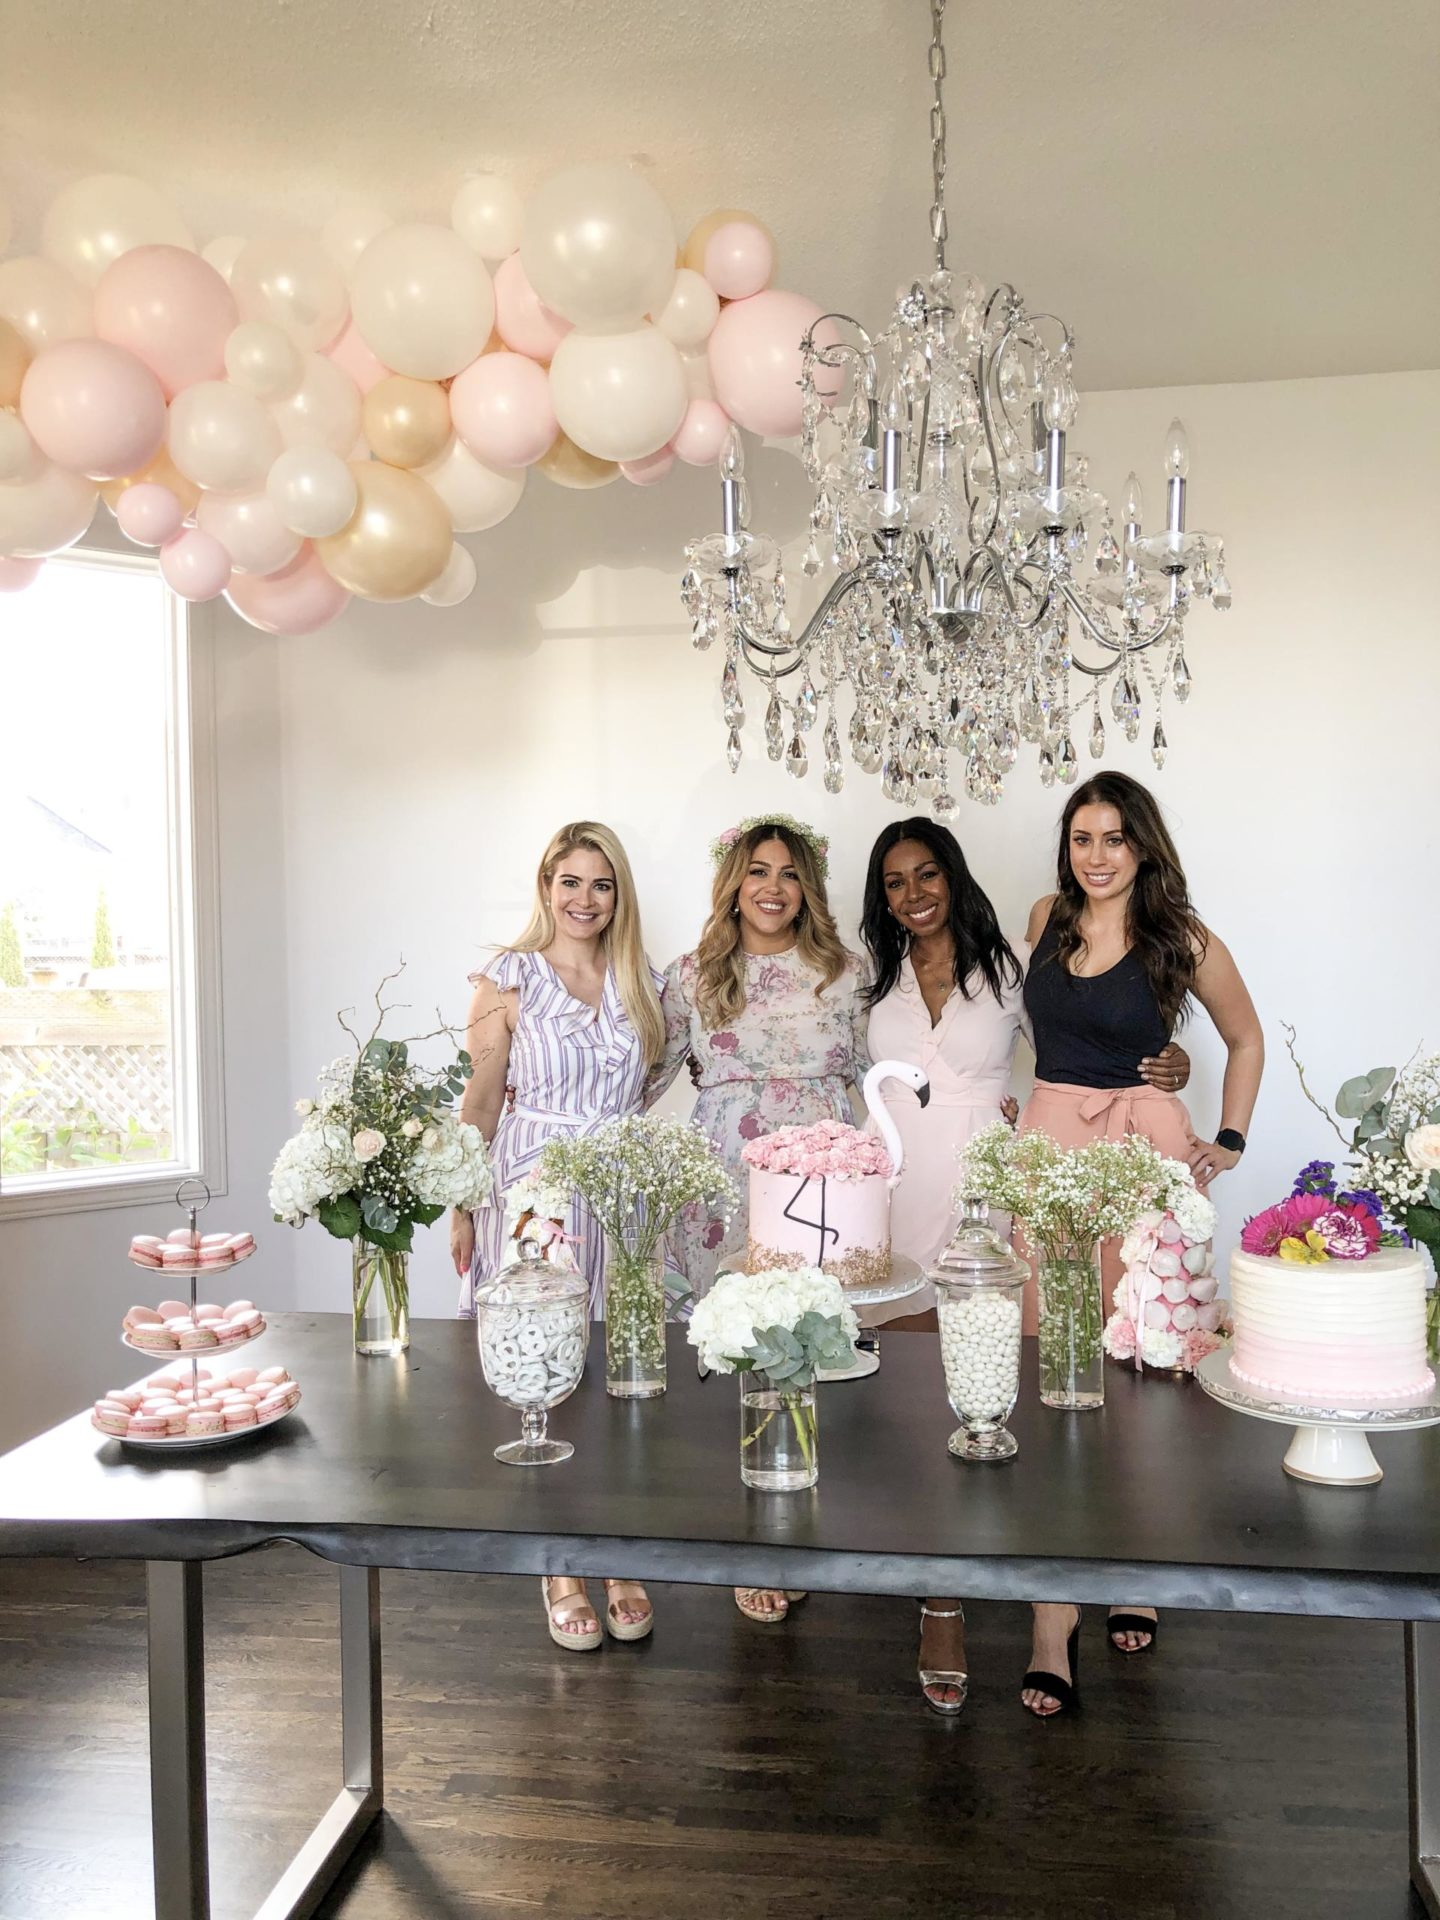 Tara Vassilev's baby shower